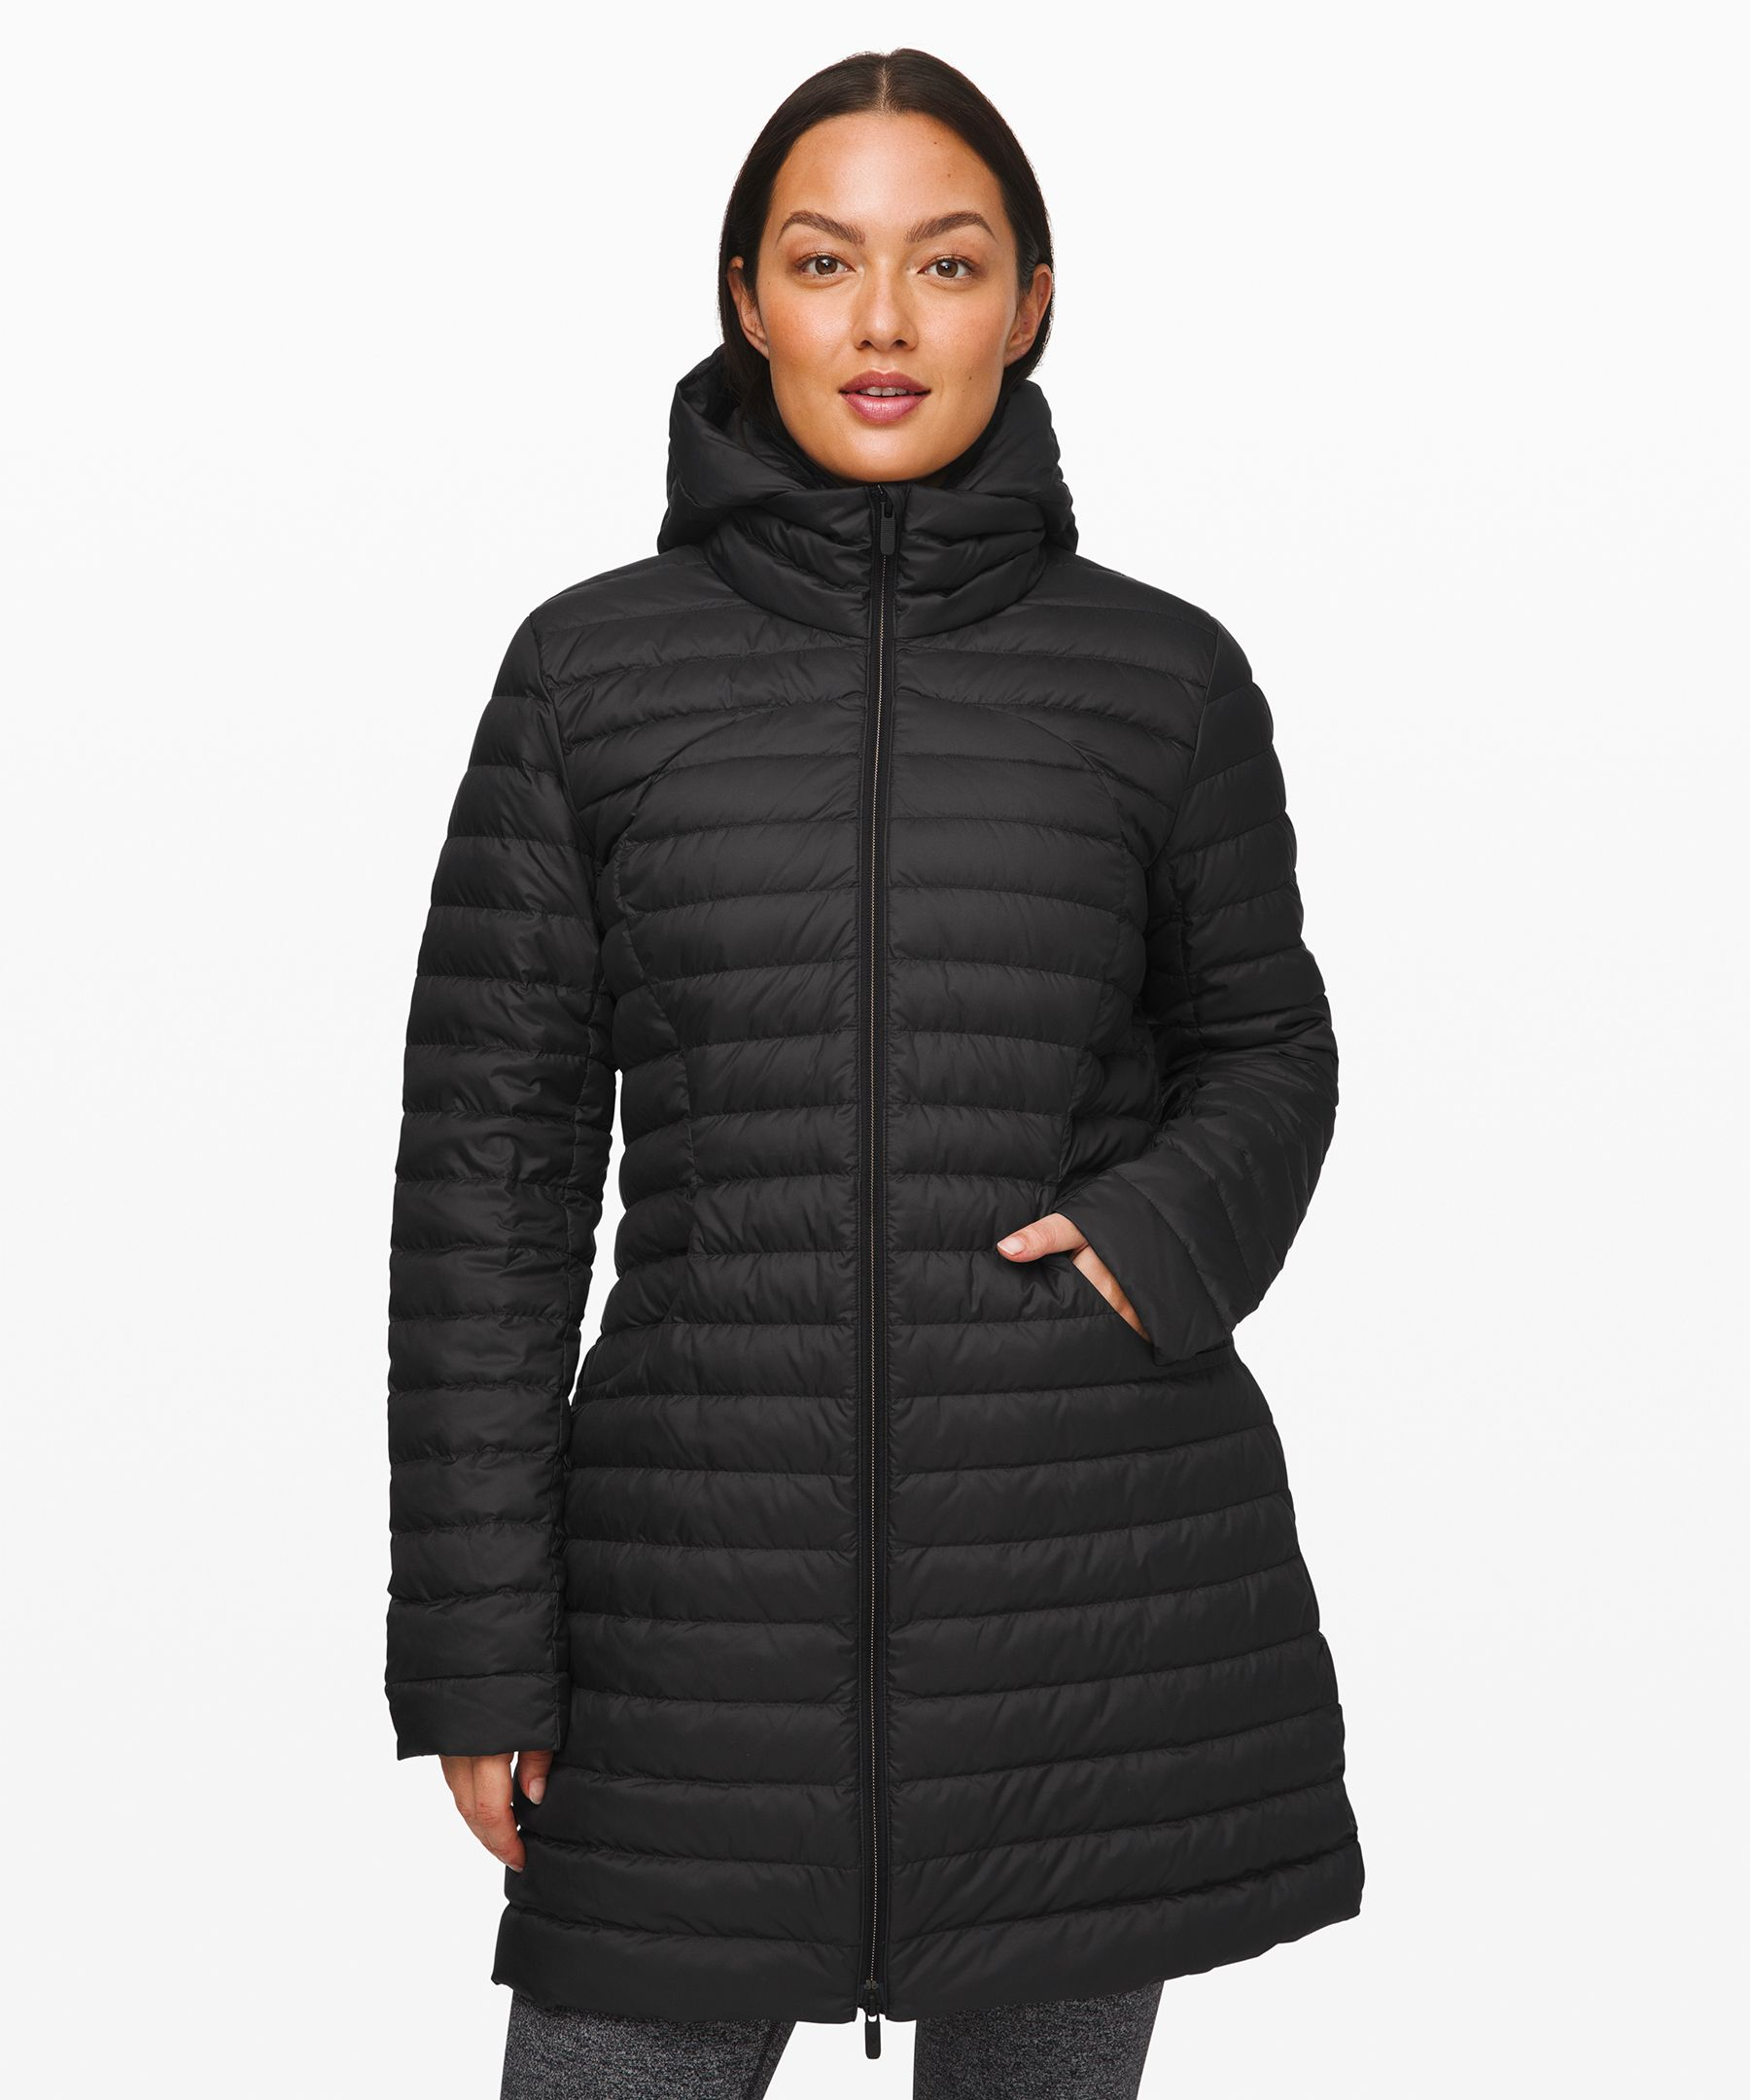 Layering season is here. Wear this packable, travel-friendly down jacket on its own, or under a rain-proof jacket for added warmth.